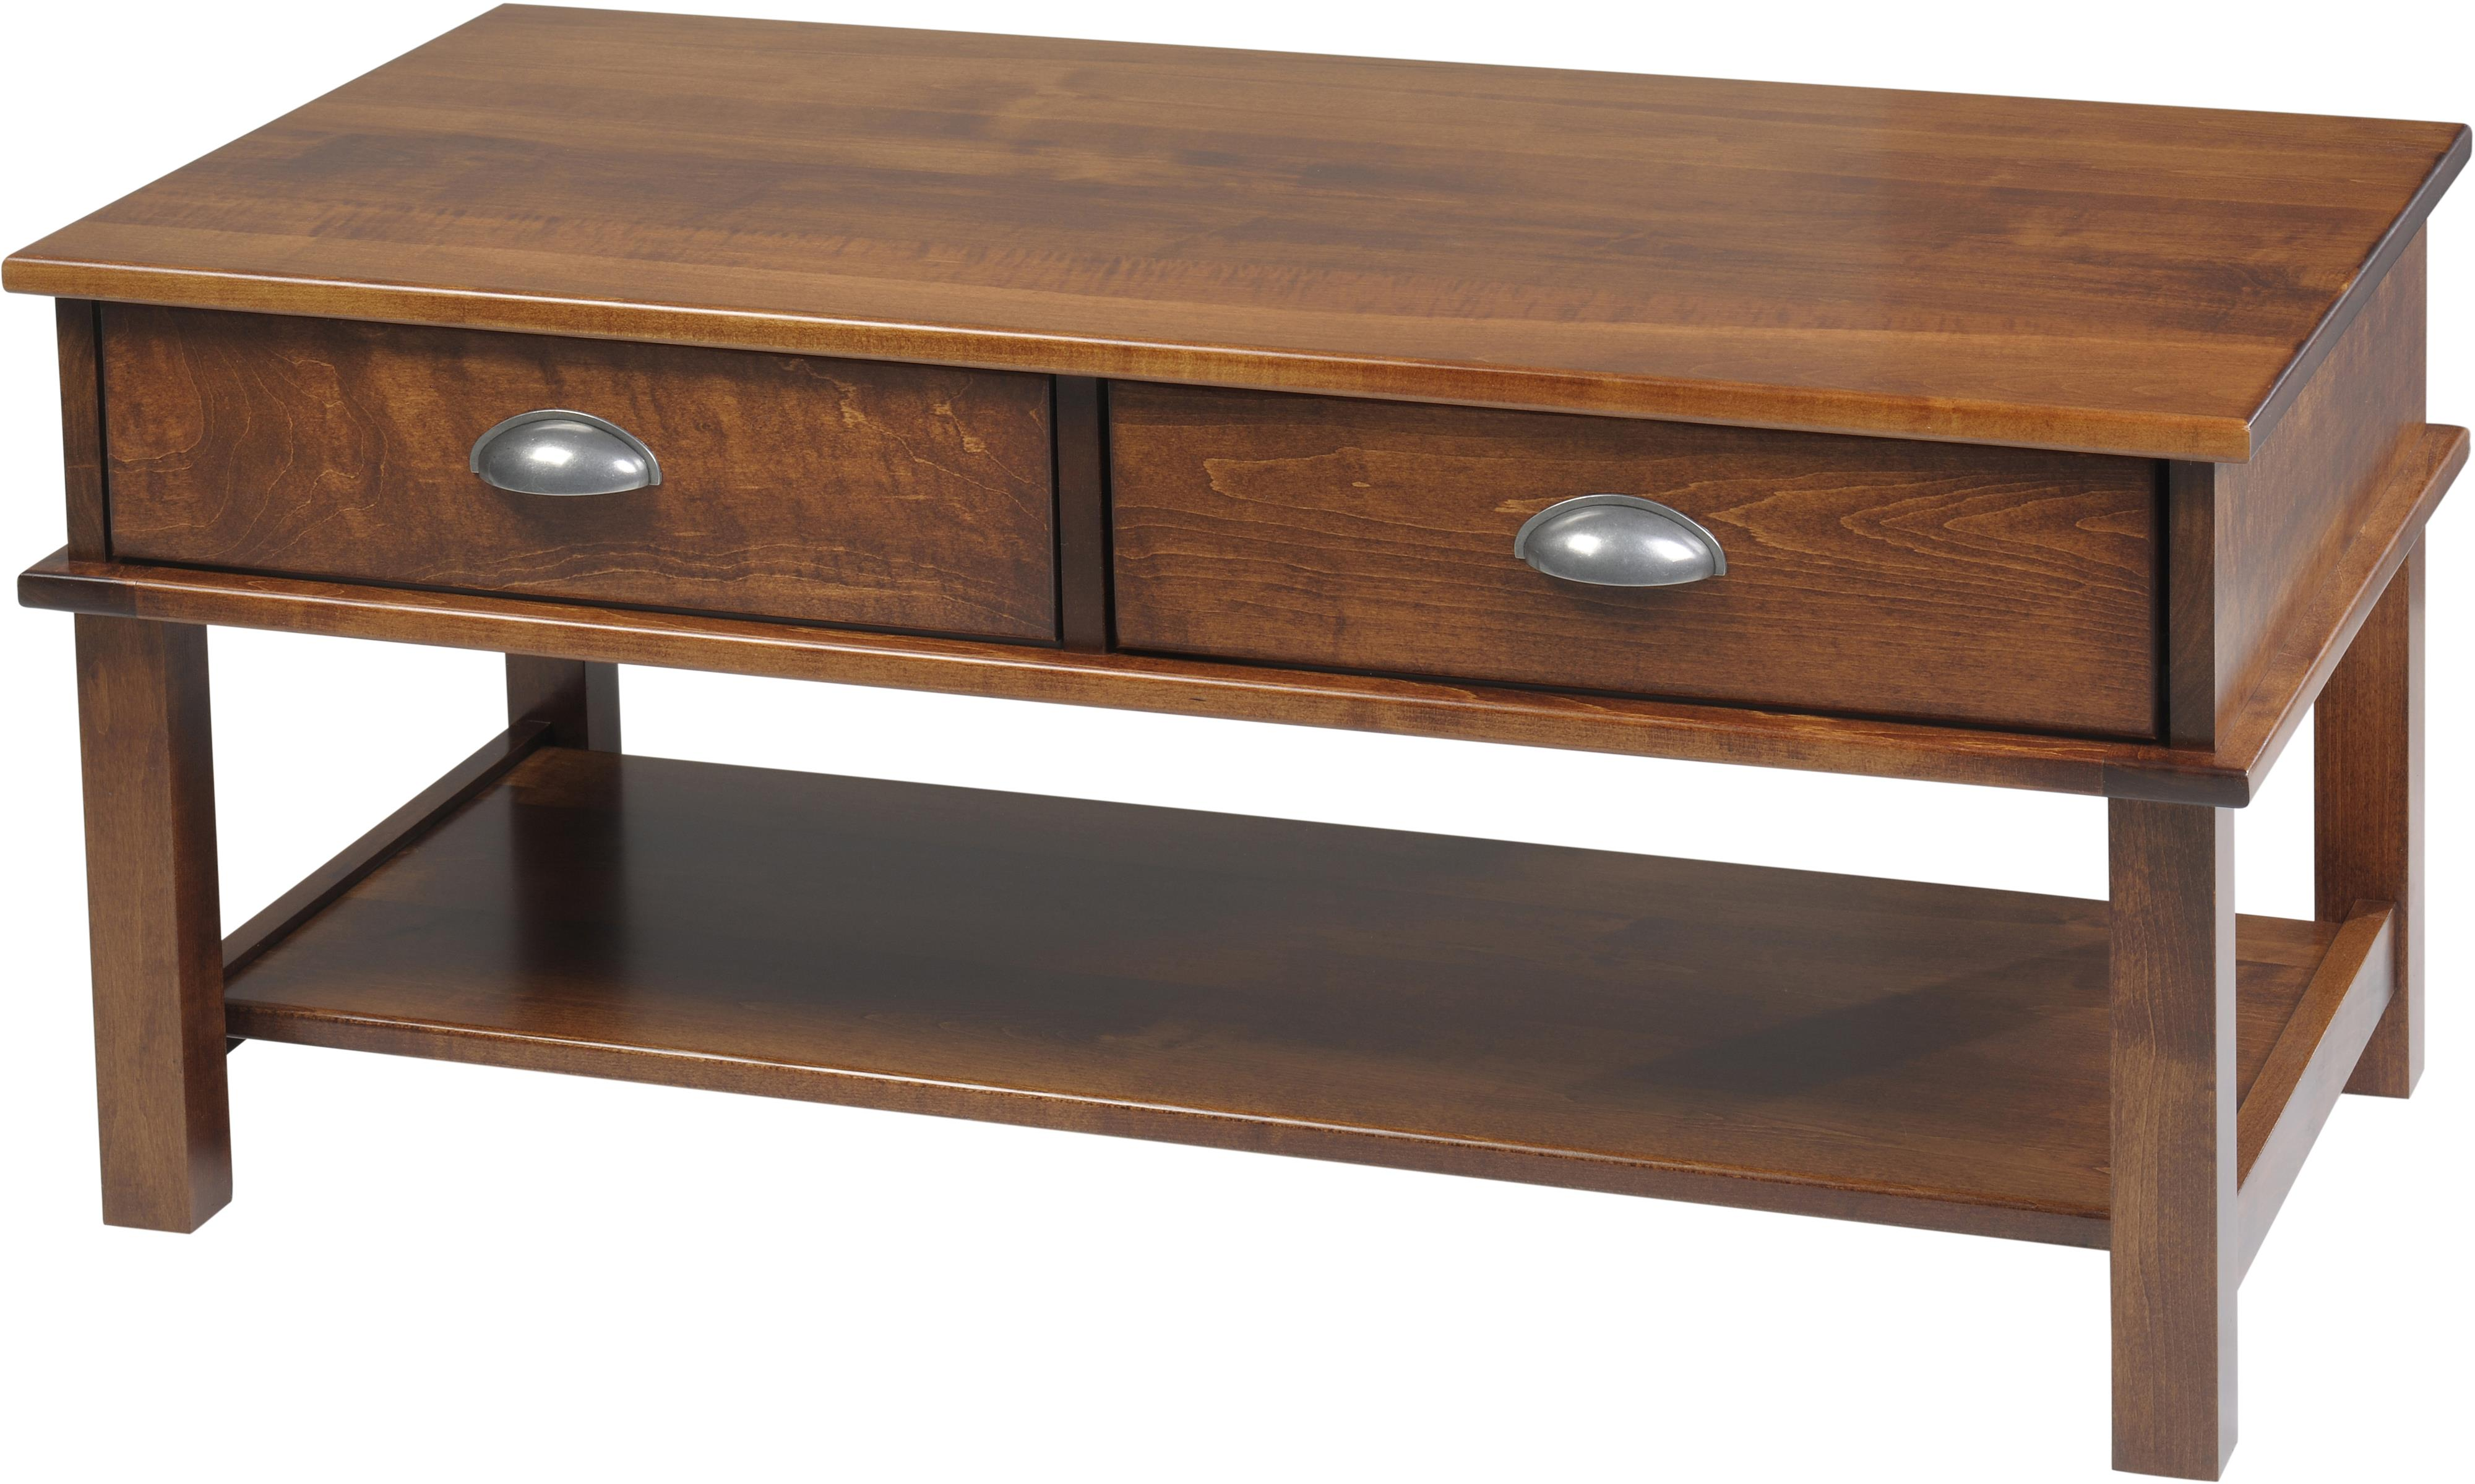 Buckhannon Coffee Table by Y & T Woodcraft at Saugerties Furniture Mart